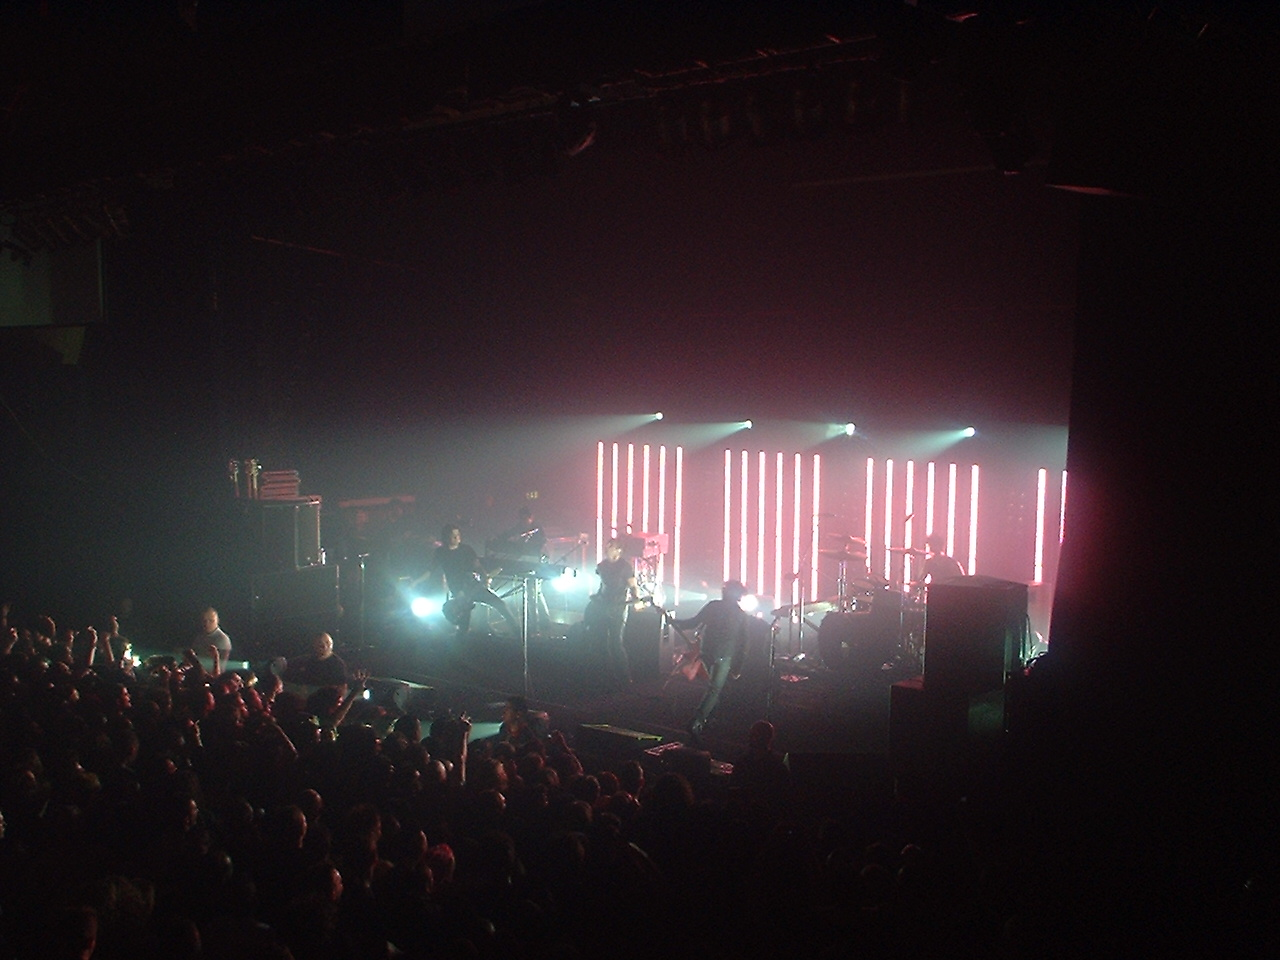 The Gorge - Nine Inch Nails live in London